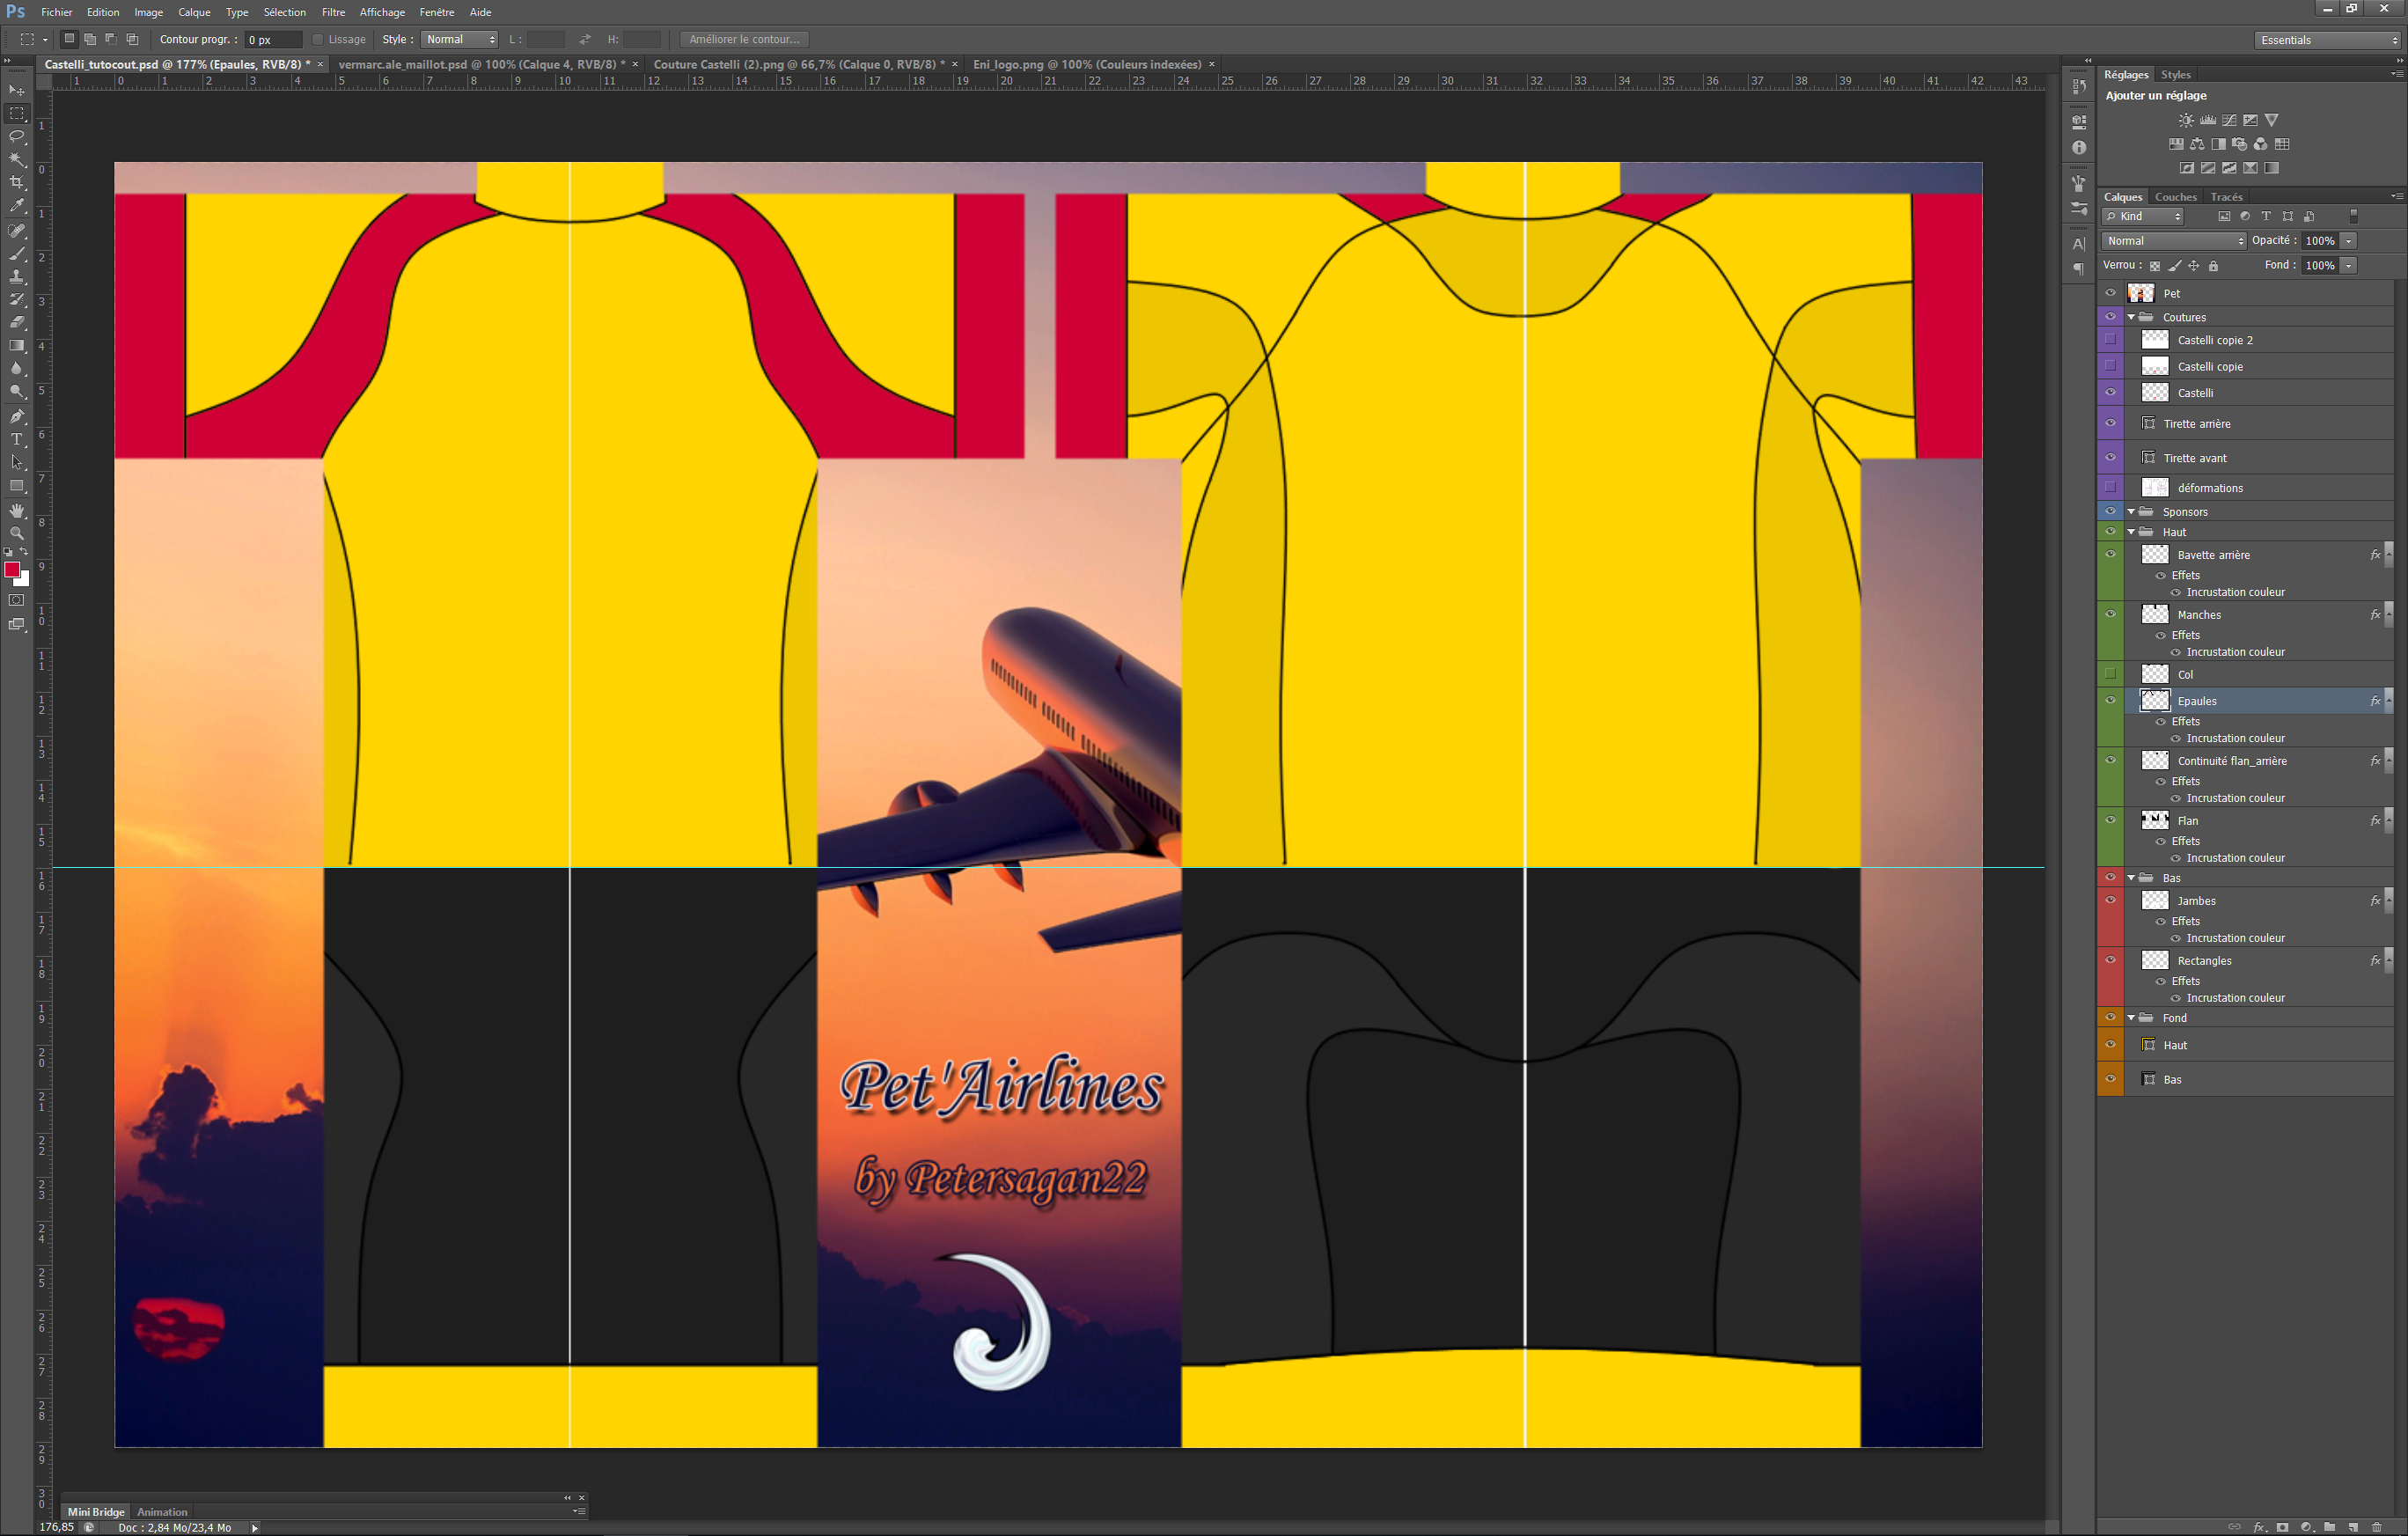 Faire un maillot sur Photoshop 190227092015341764